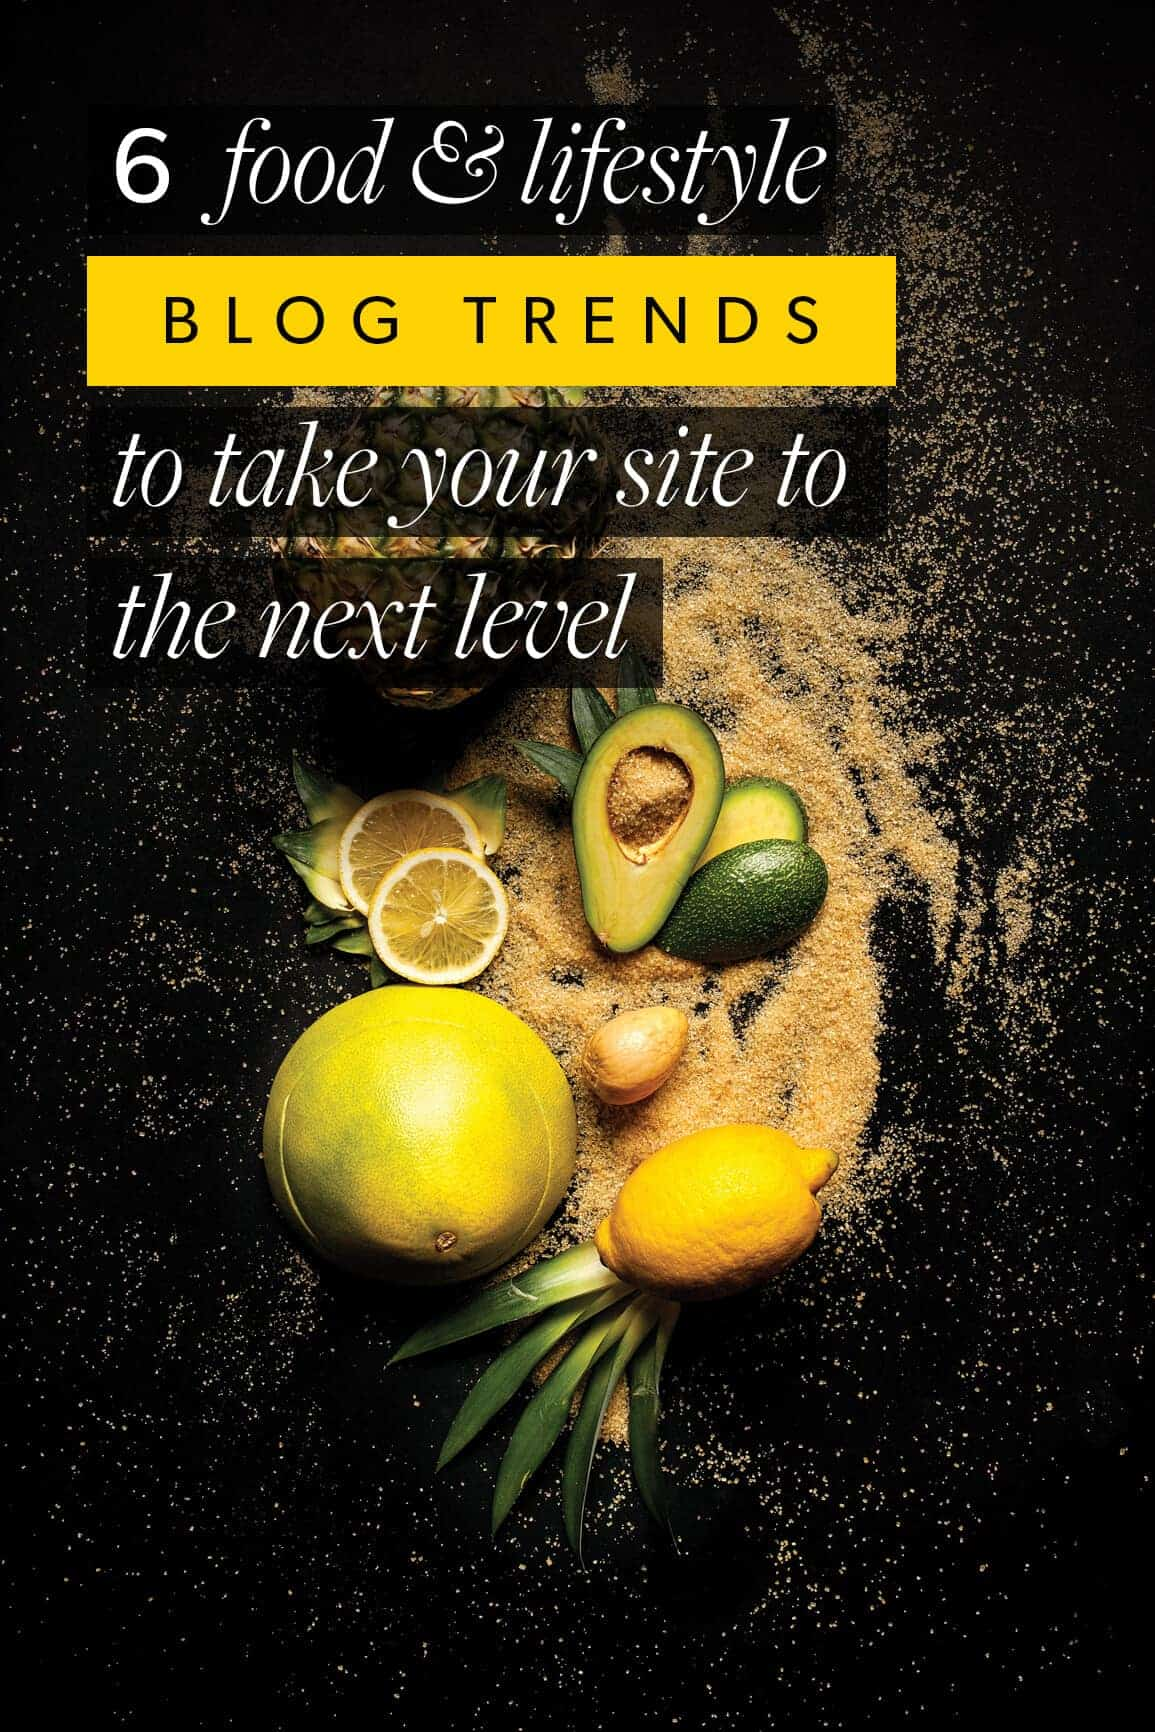 blogtrendsfeatured